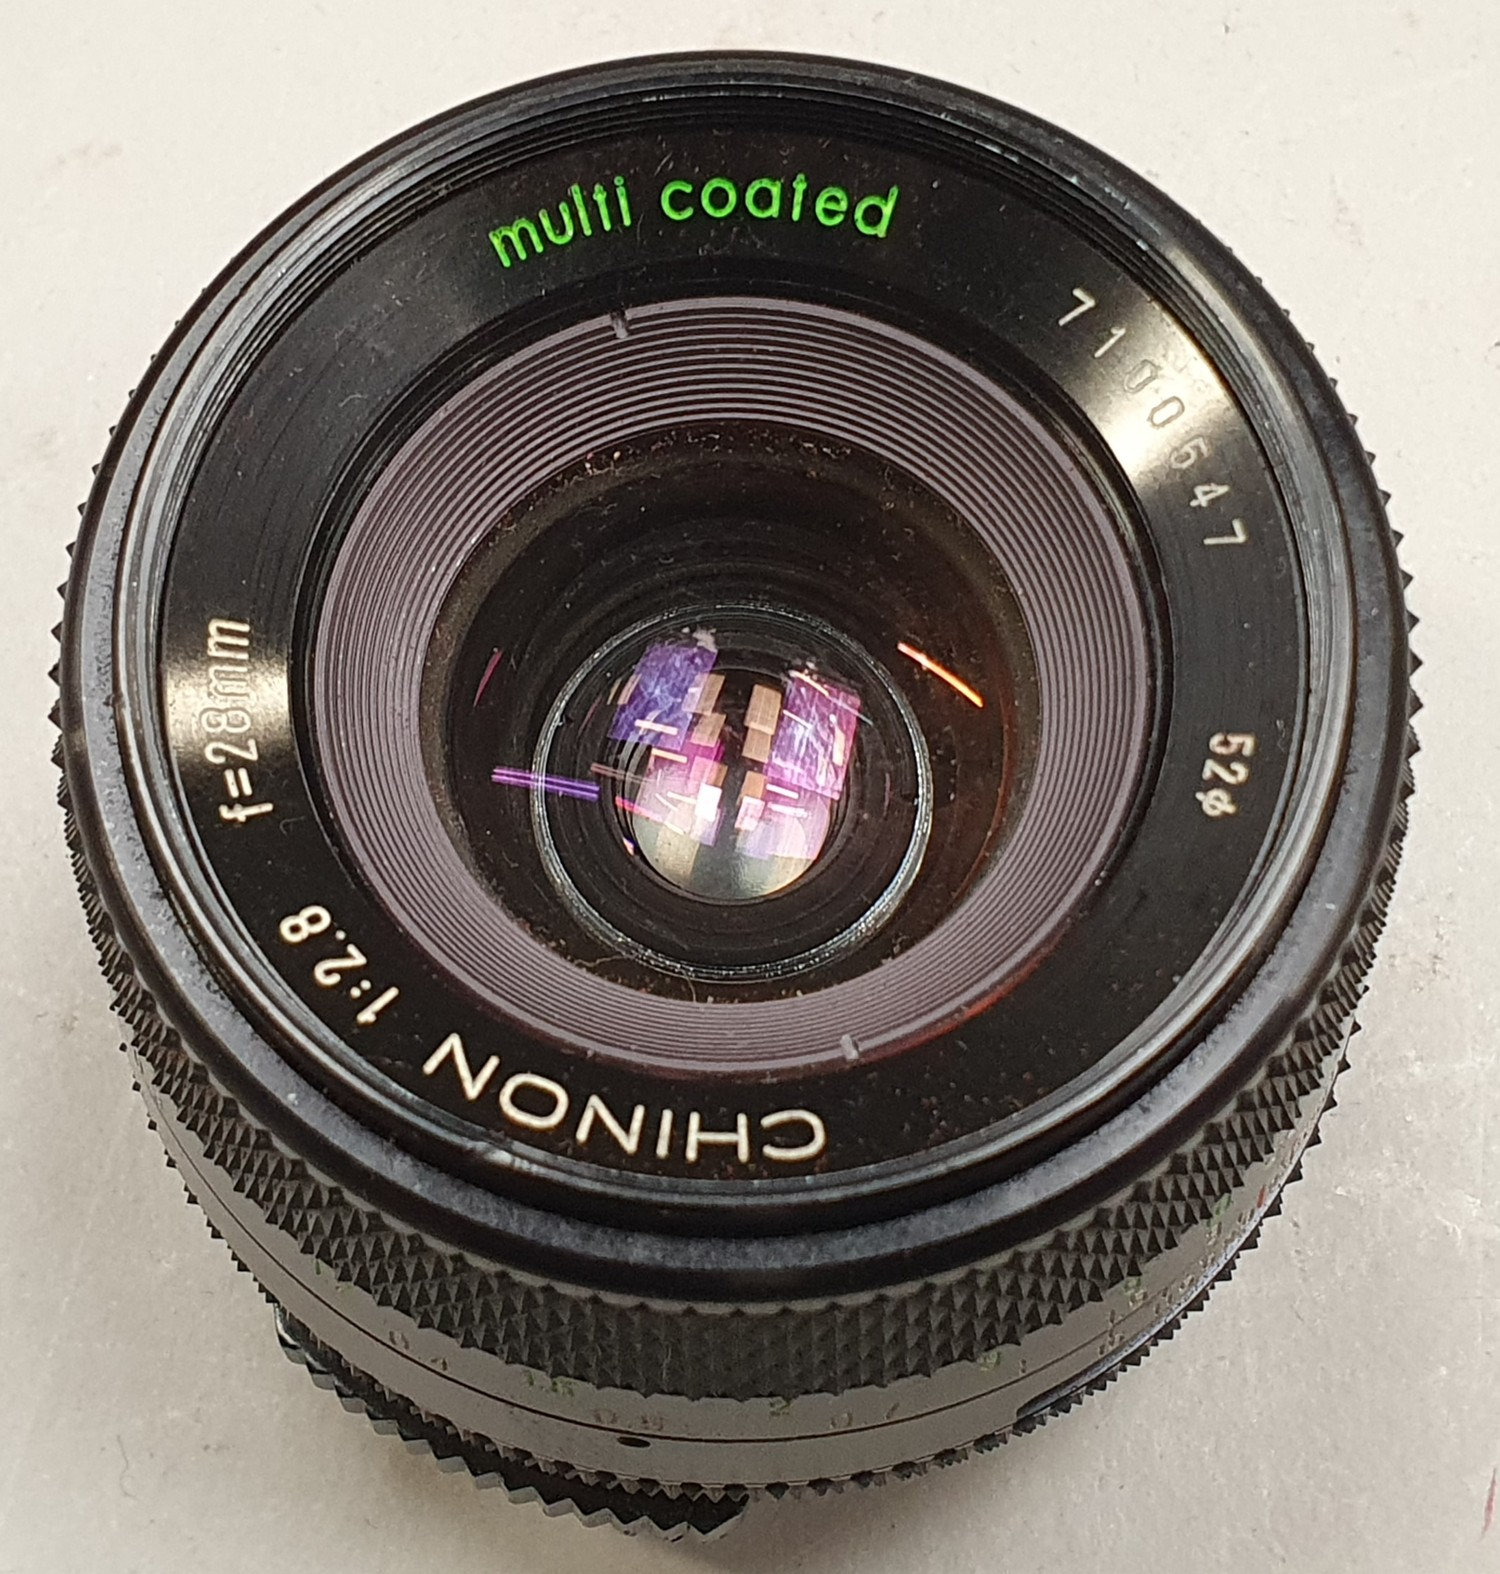 A collection of camera lenses to include Optomax, Nikon etc. - Image 2 of 9